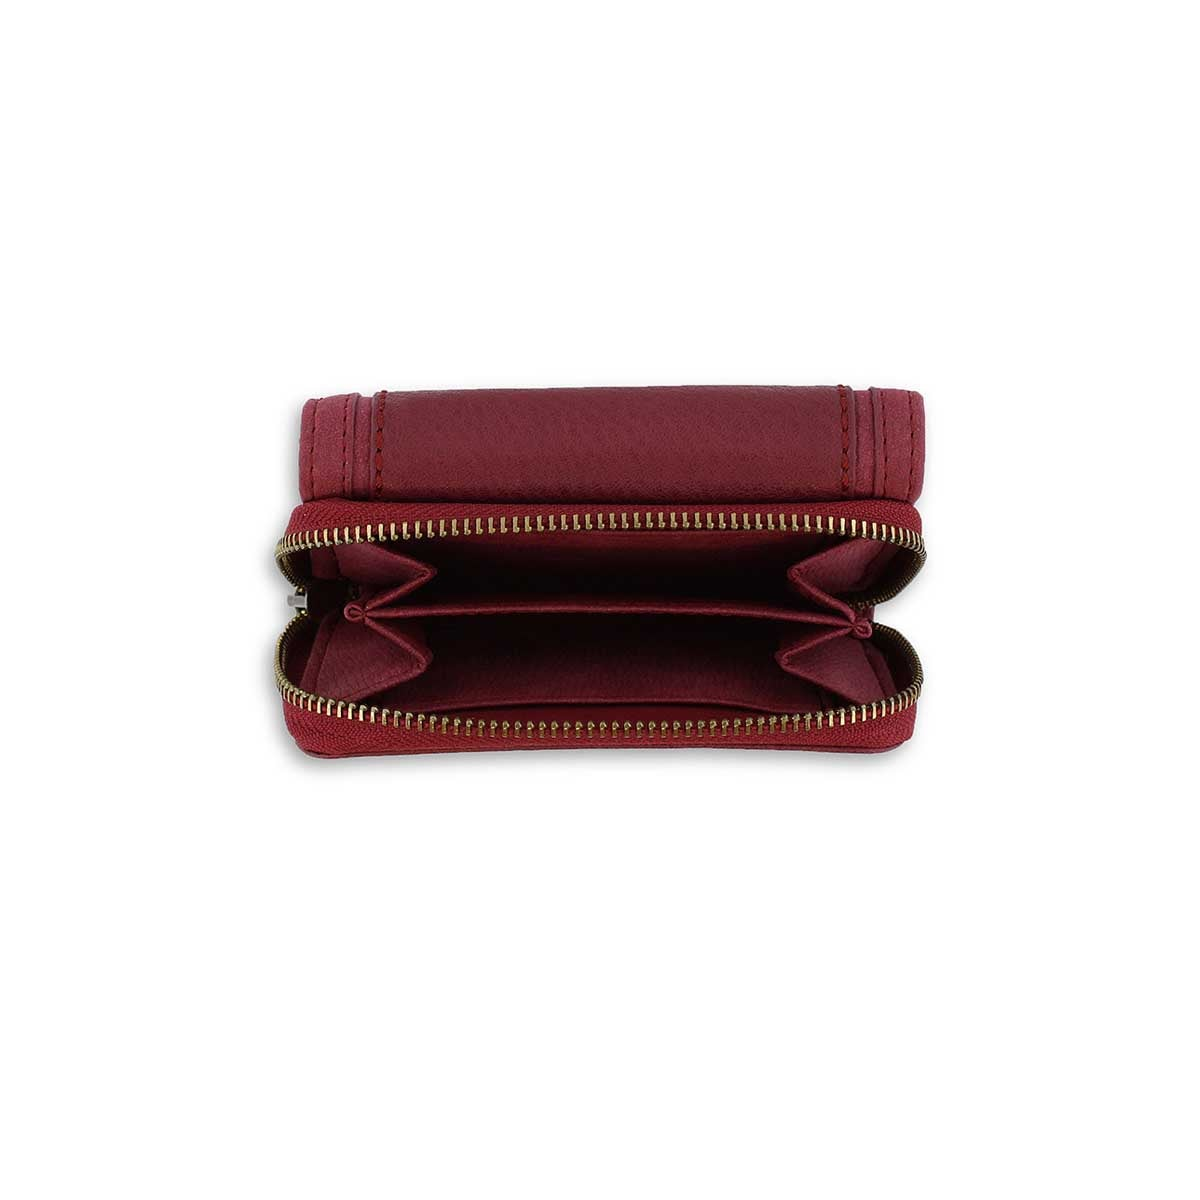 Lds Cliff berry trifold wallet